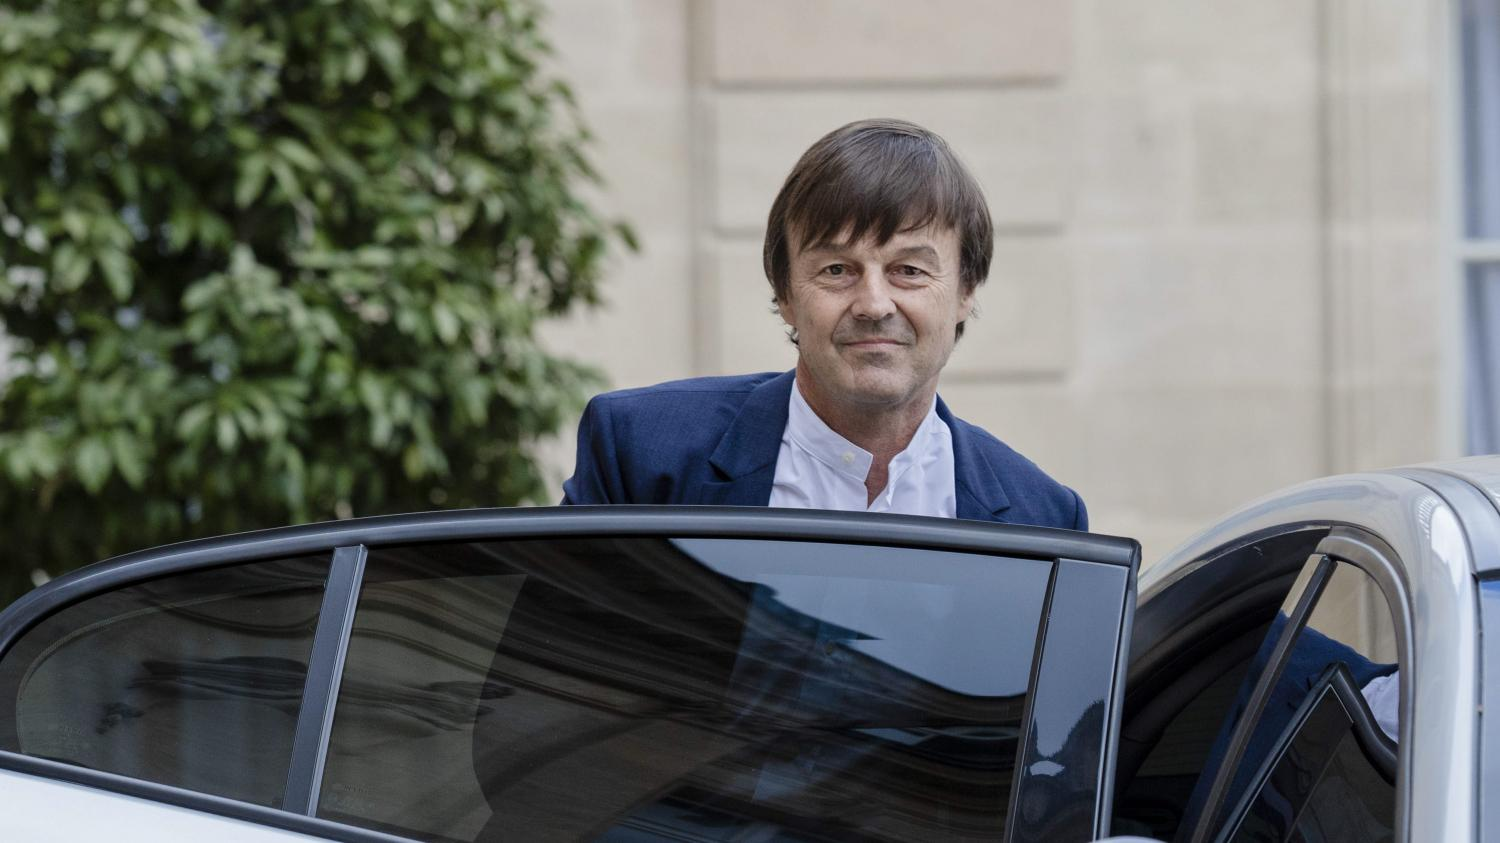 nicolas hulot un ministre de l 39 ecologie qui poss de six voitures pas toutes propres. Black Bedroom Furniture Sets. Home Design Ideas